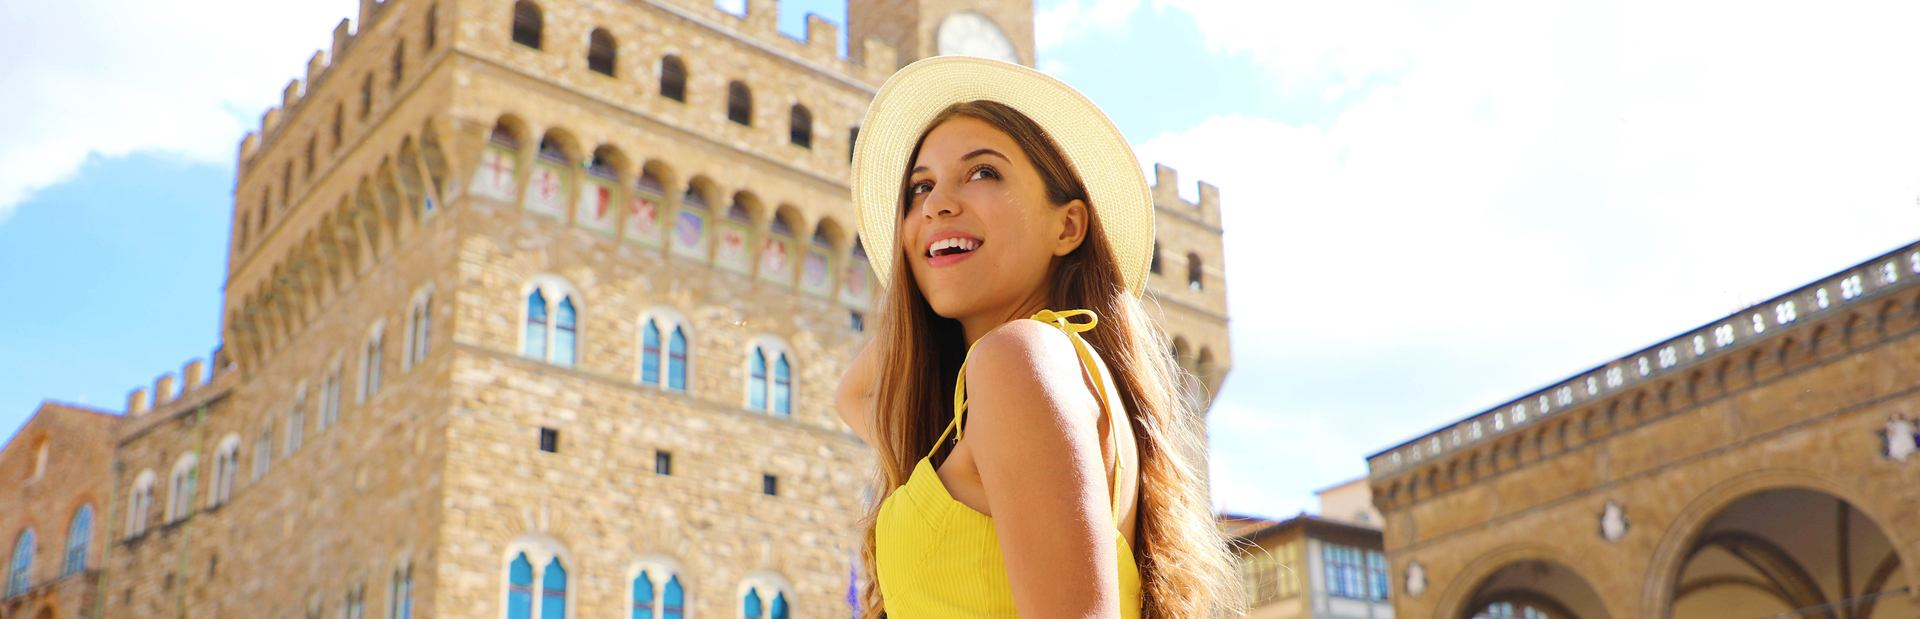 Things to see & do inItaly